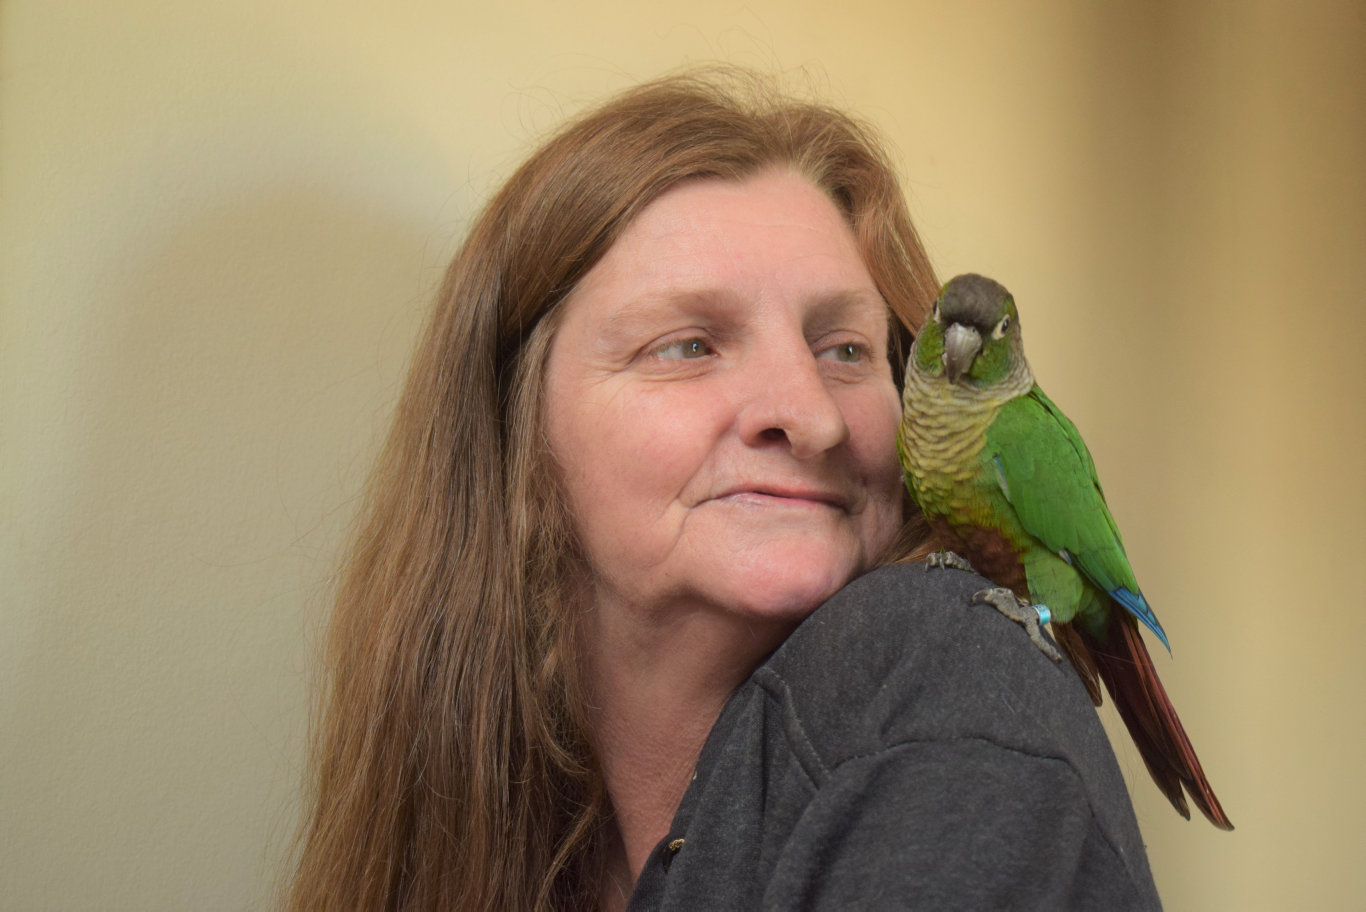 REUNITED: Janice Robins with her pet bird Lollie who miraculously made it home after being stolen along with three of Janice's other birds two months ago.